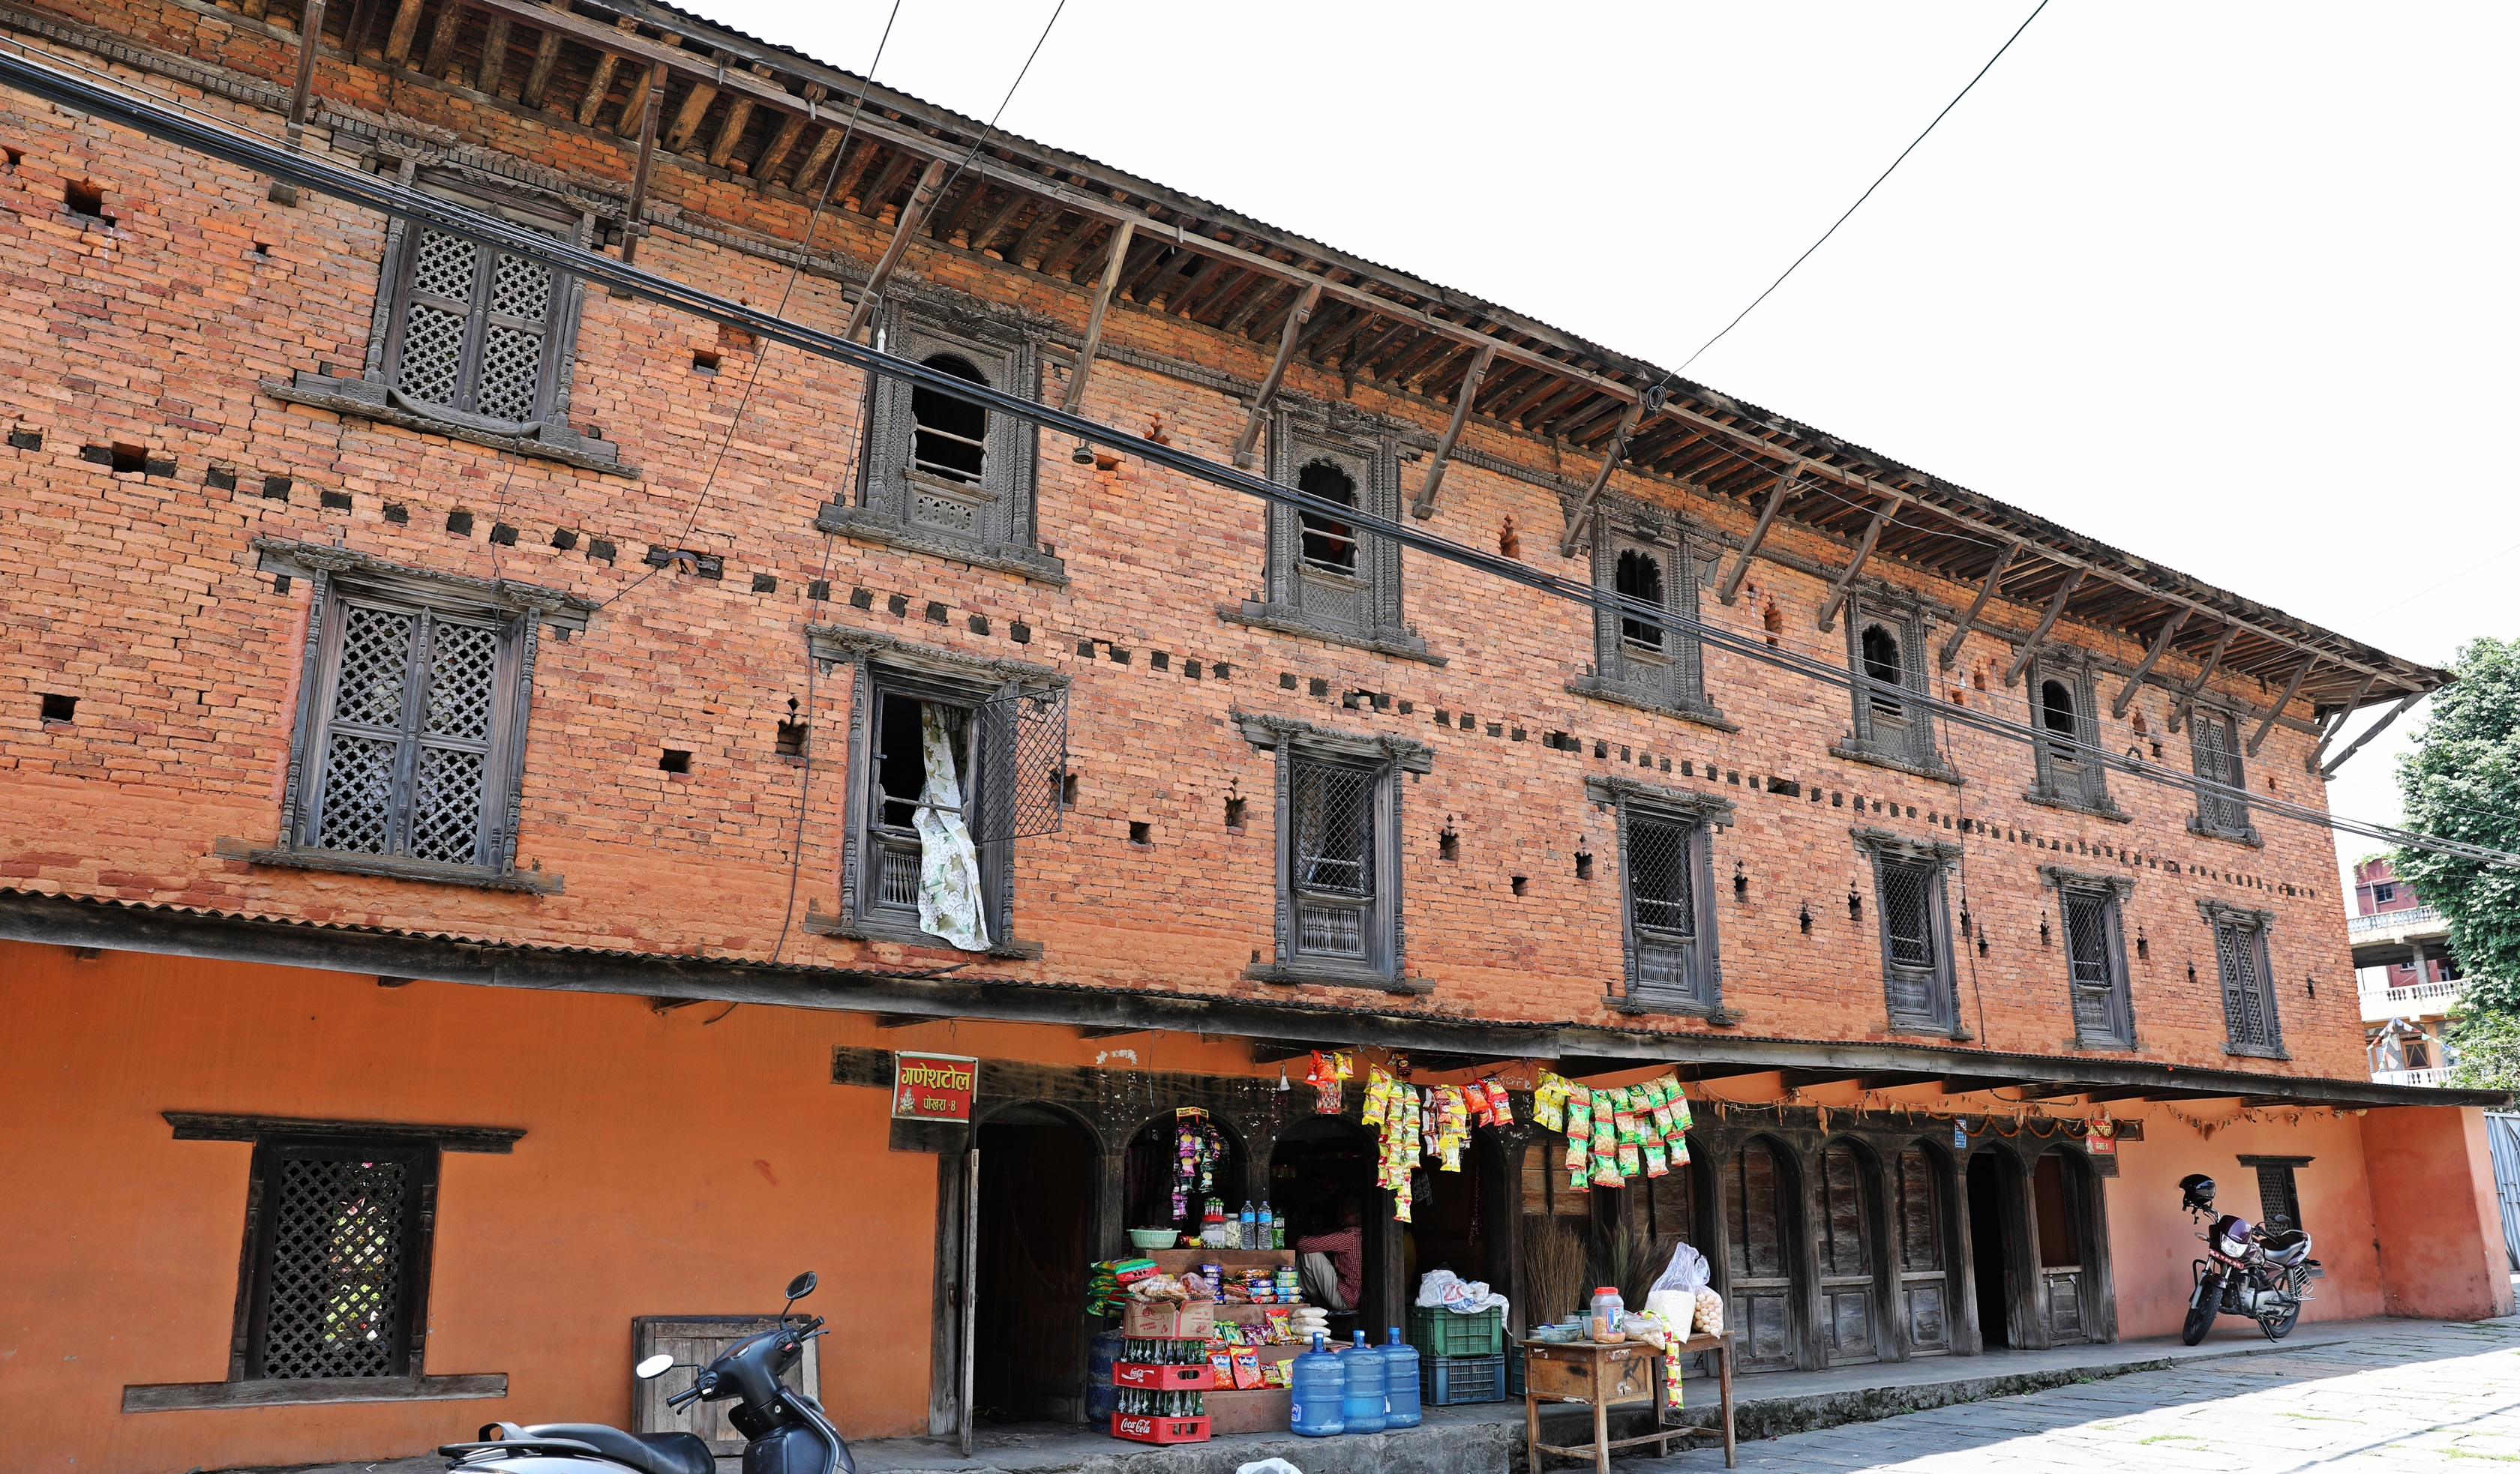 Newari architecture in Pokhara